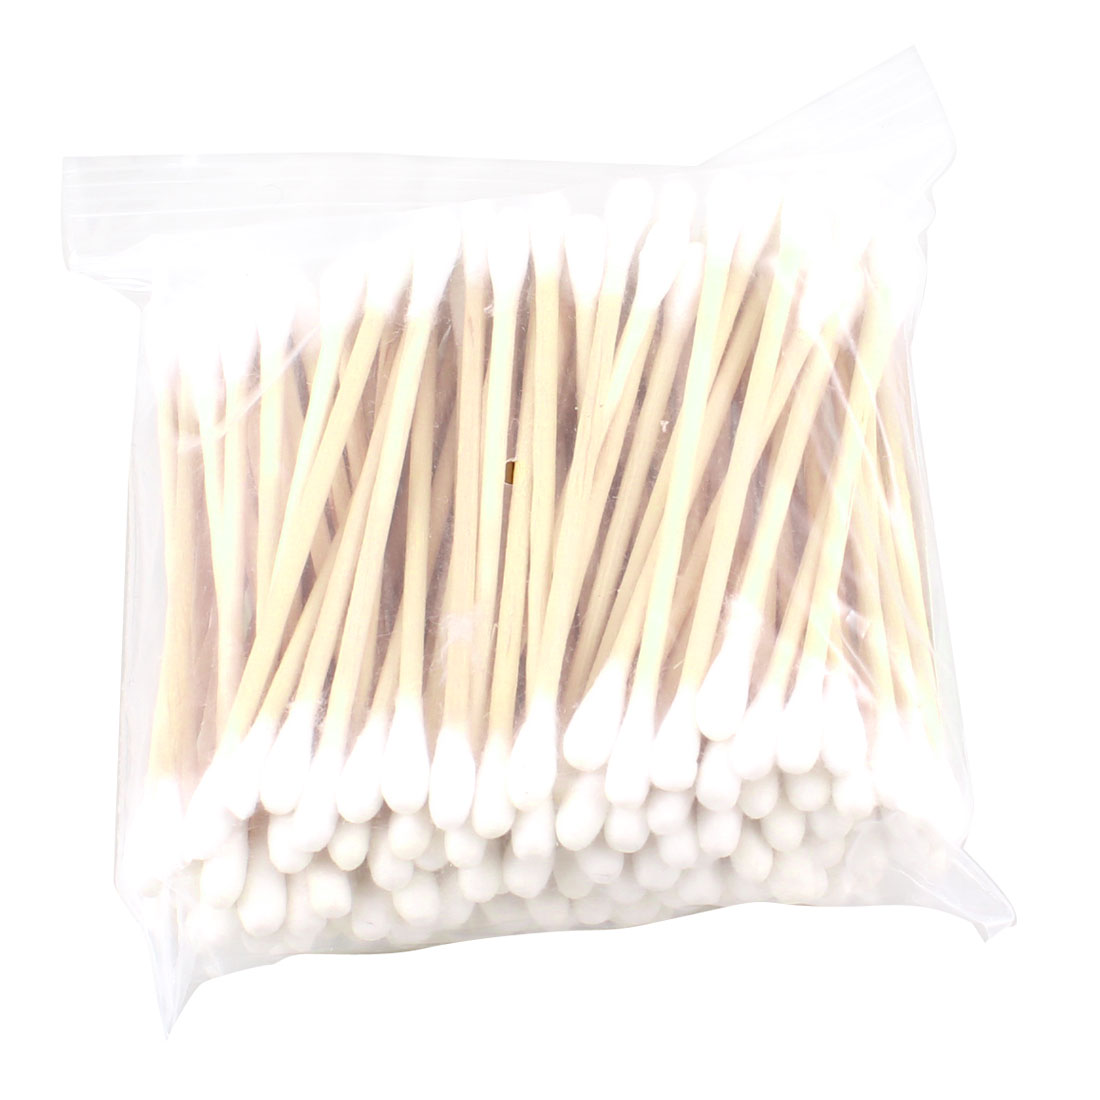 Wooden Bar Make Up Earwax Removing Cleaning Tool Cotton Swab Buds Beige 130 Pcs